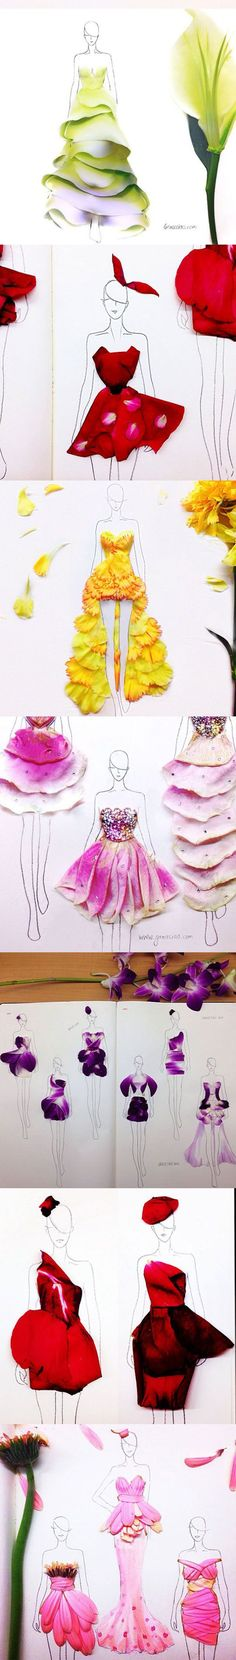 (••).                                                             Fashion Illustrations With Real Flower Petals As Clothing